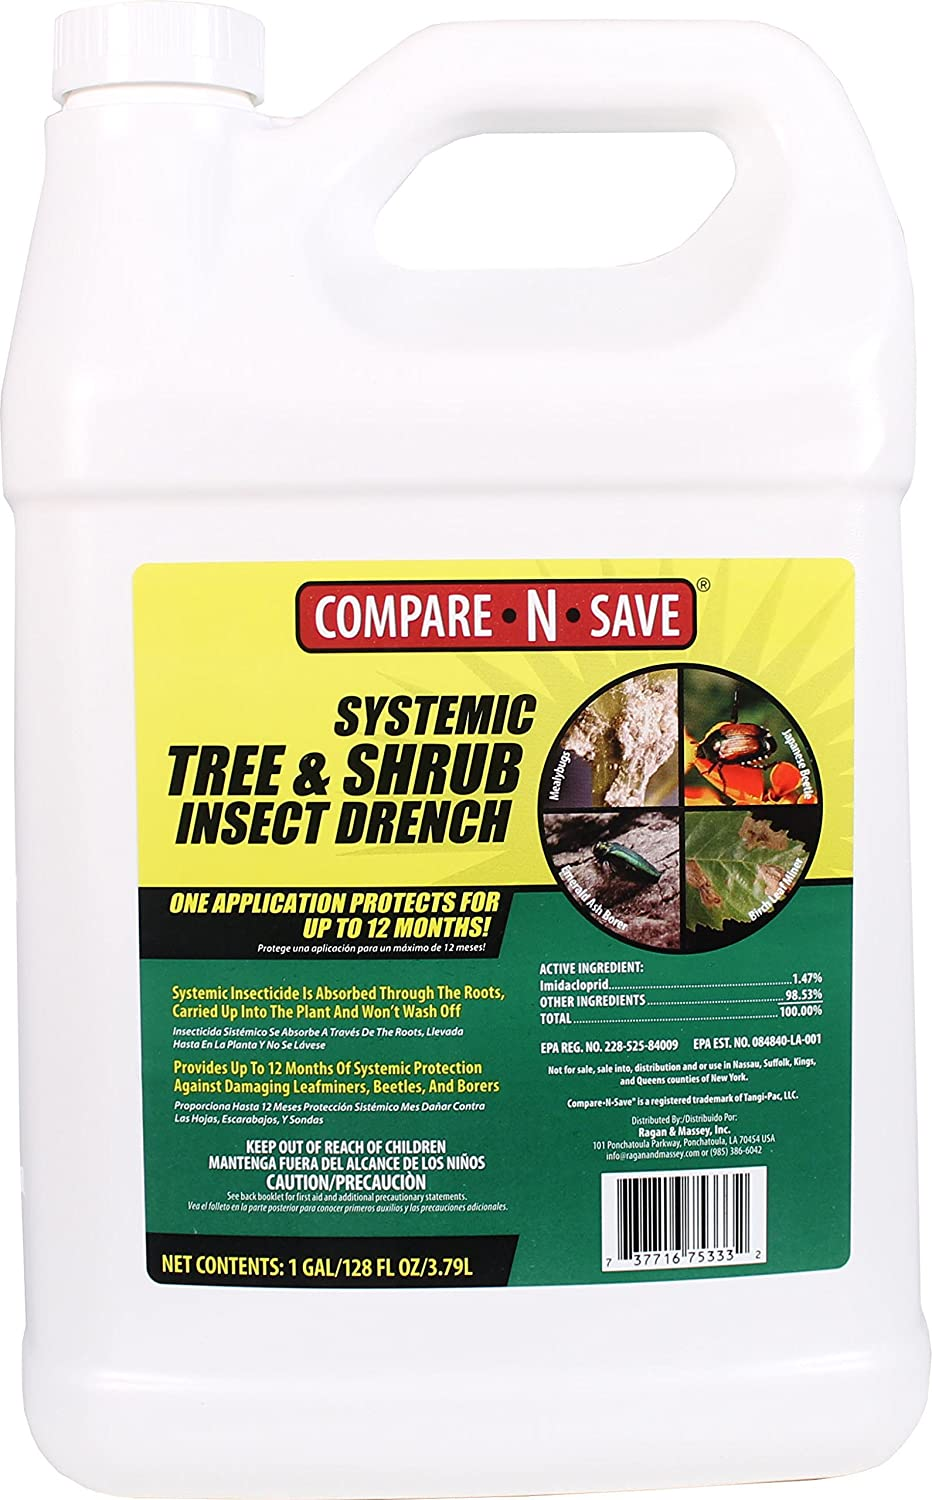 Compare-N-Save Systemic Tree and Shrub Insect Drench Review